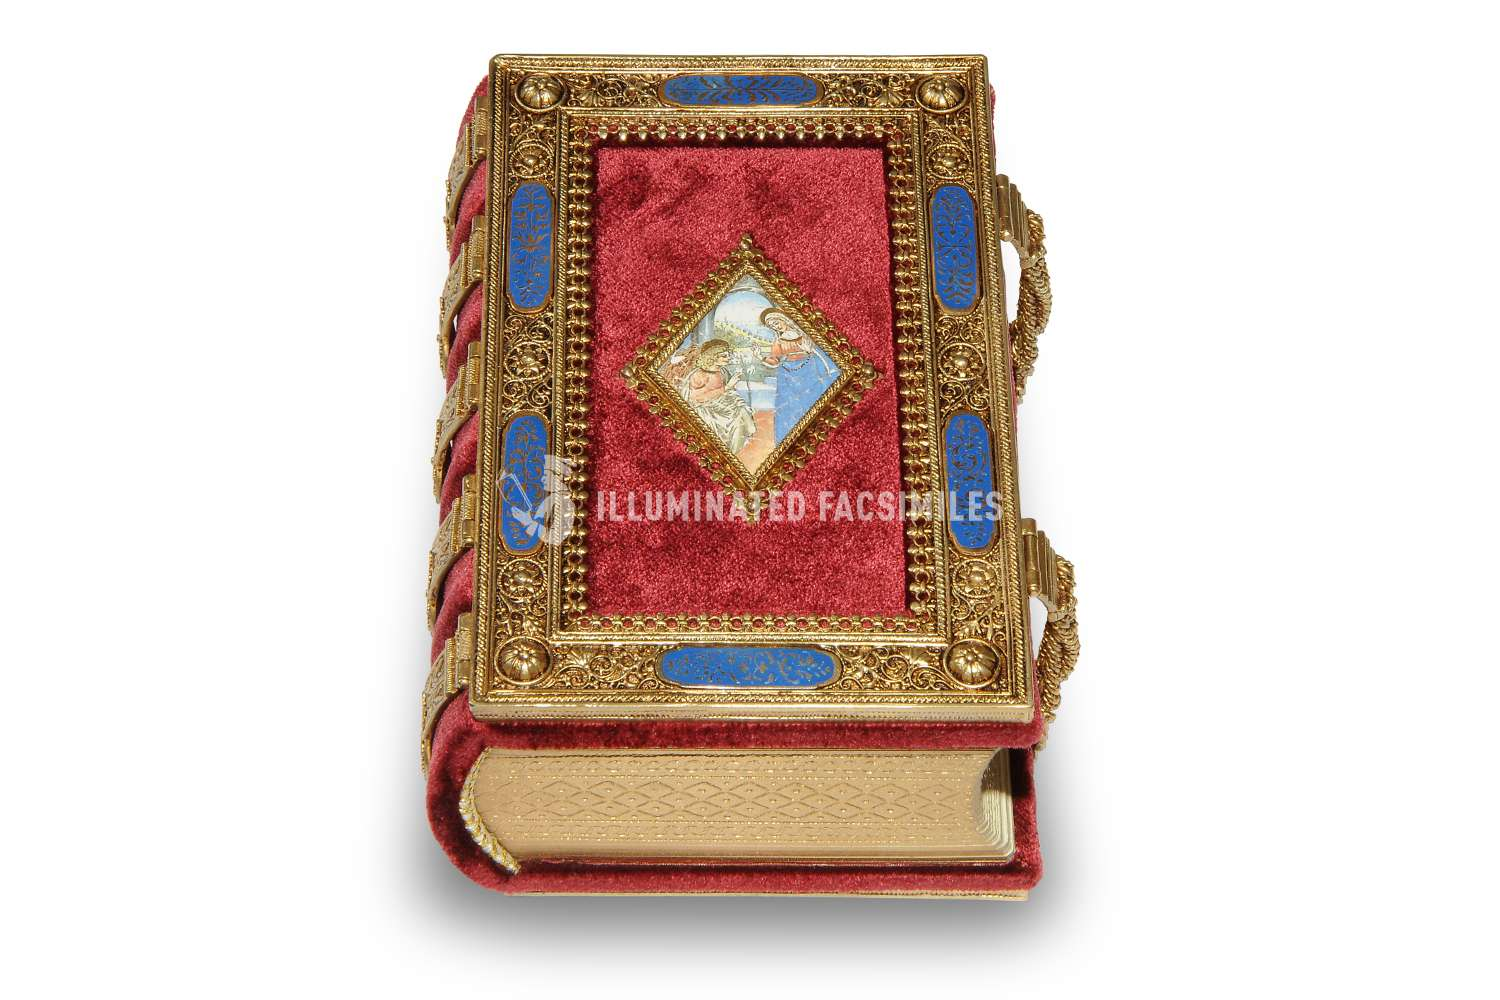 ILLUMINATED FACSIMILES®, Franco Cosimo Panini Editore – Ore Medici Rothschild – photo 01, copyright Illuminated Facsimiles